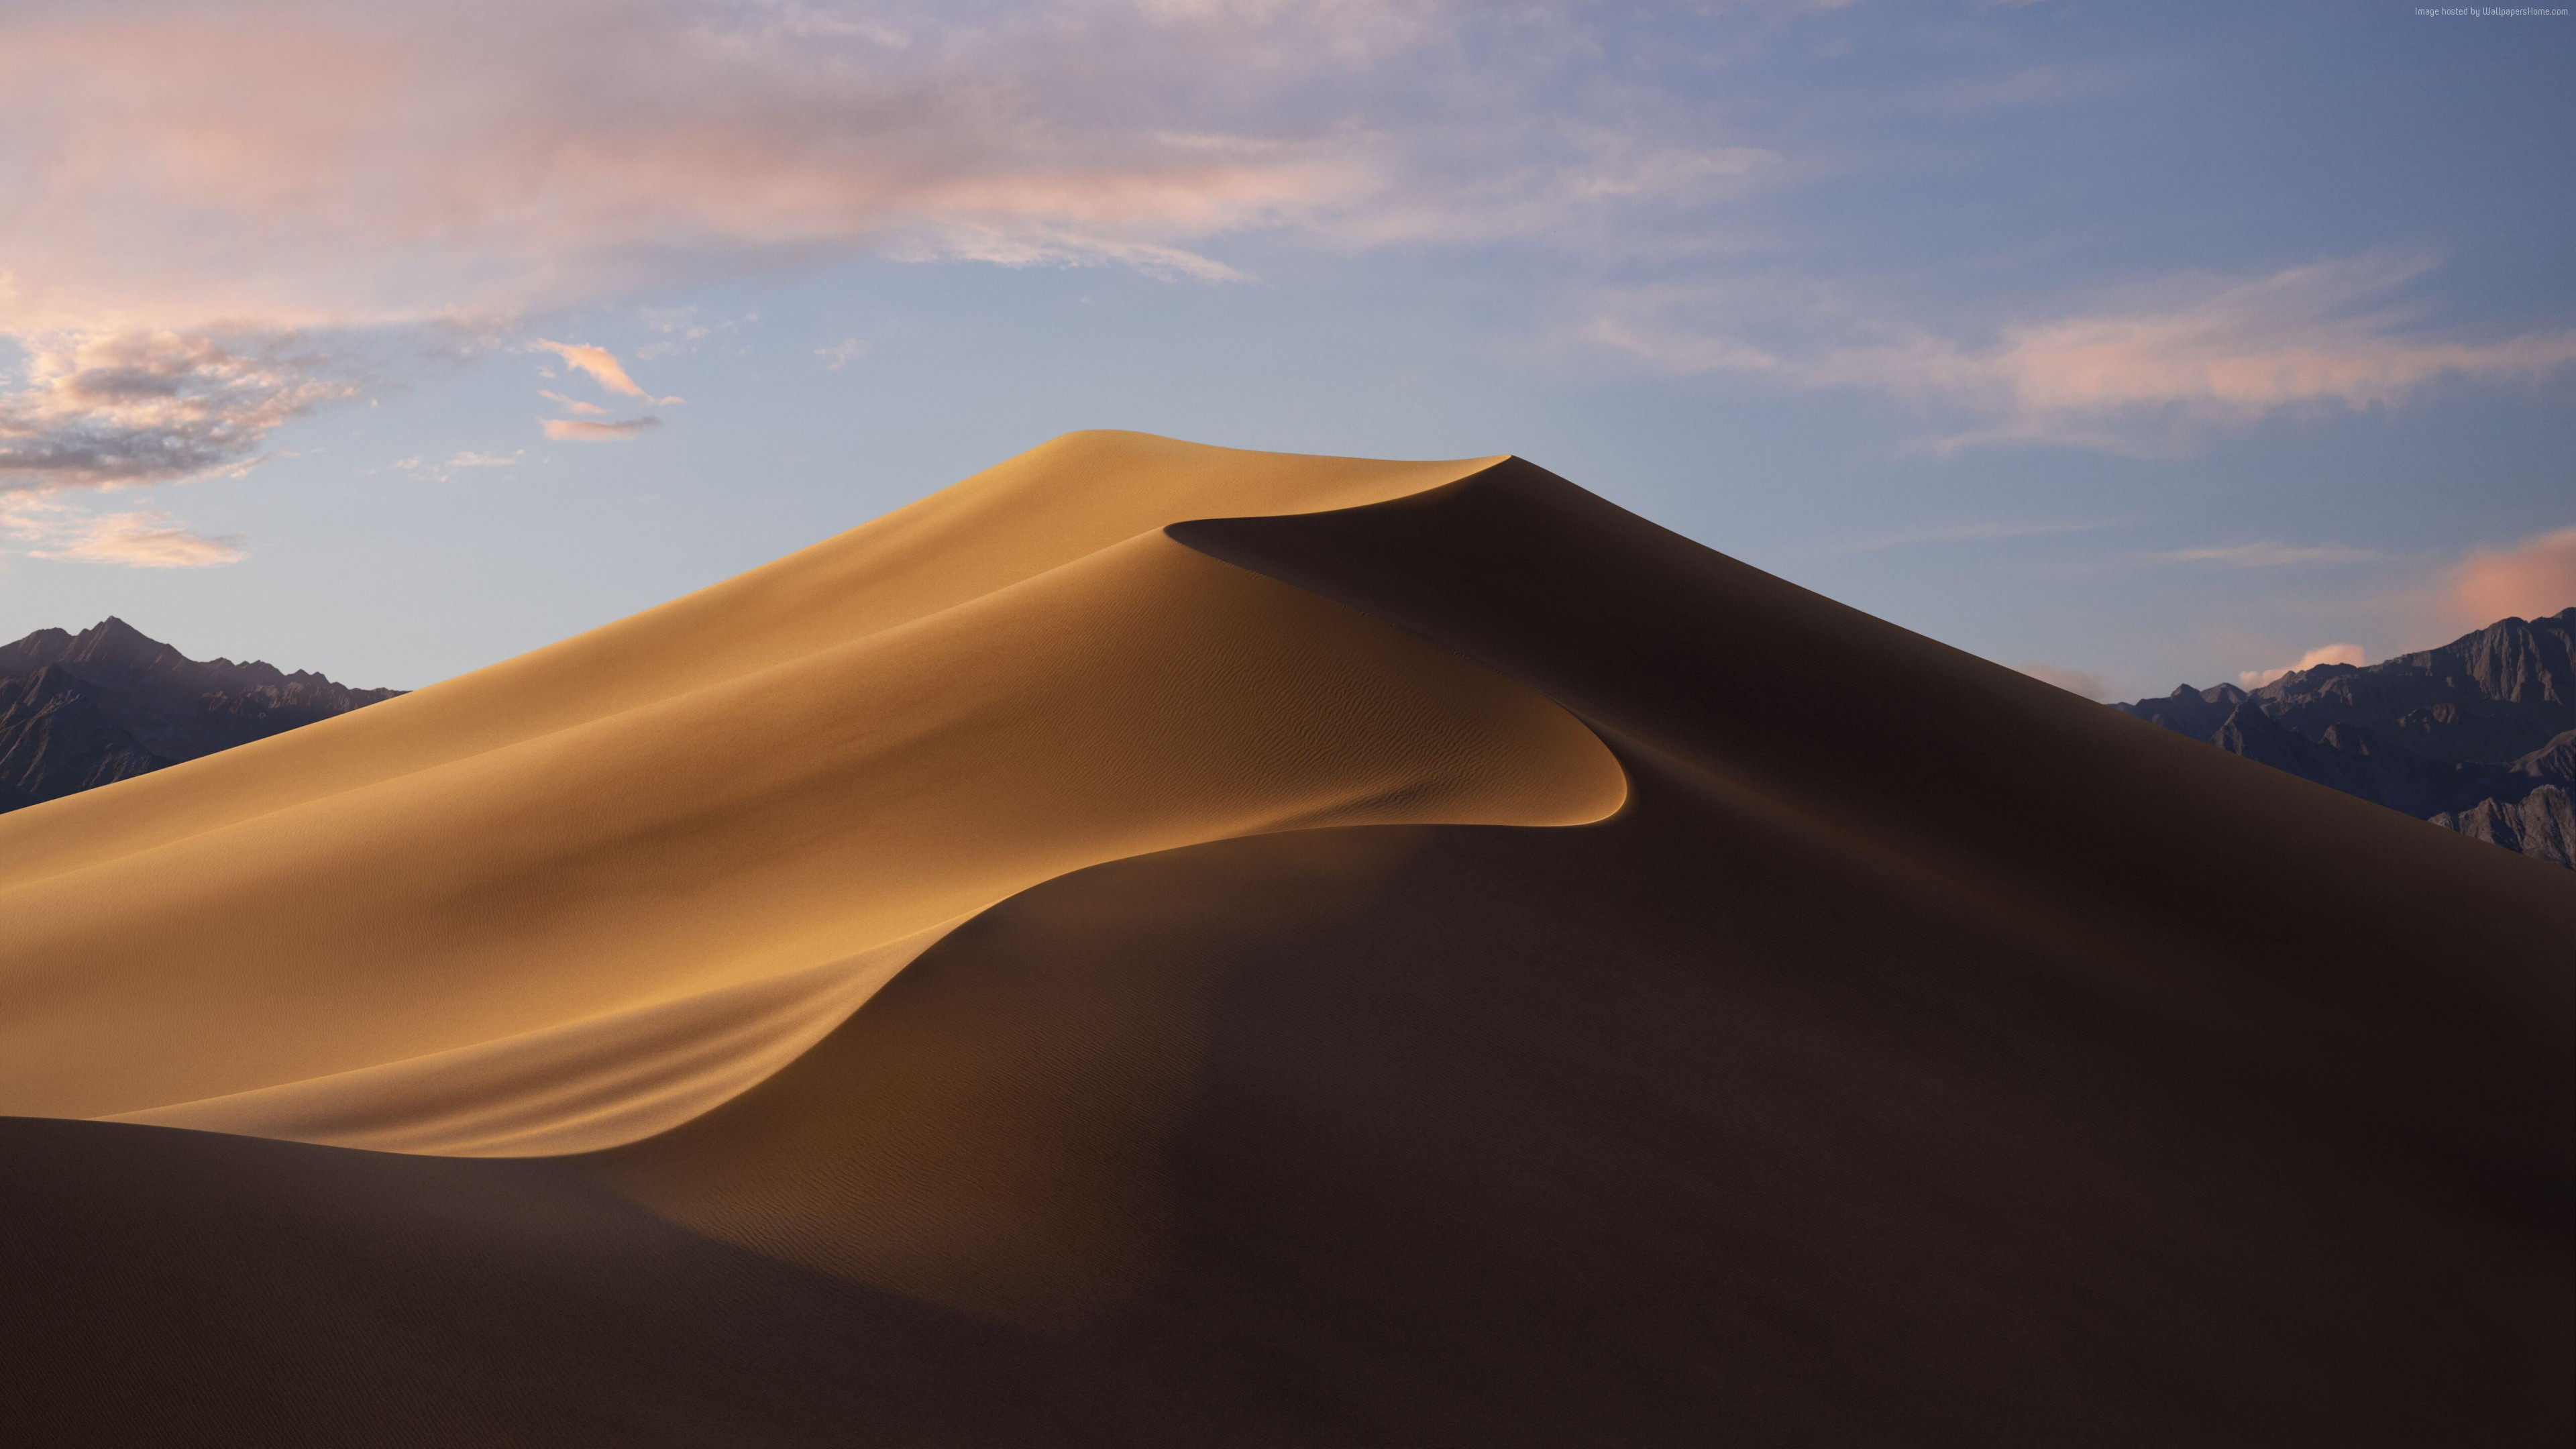 Wallpaper macOS Mojave, Day, Dunes, WWDC 2018, 5K, OS